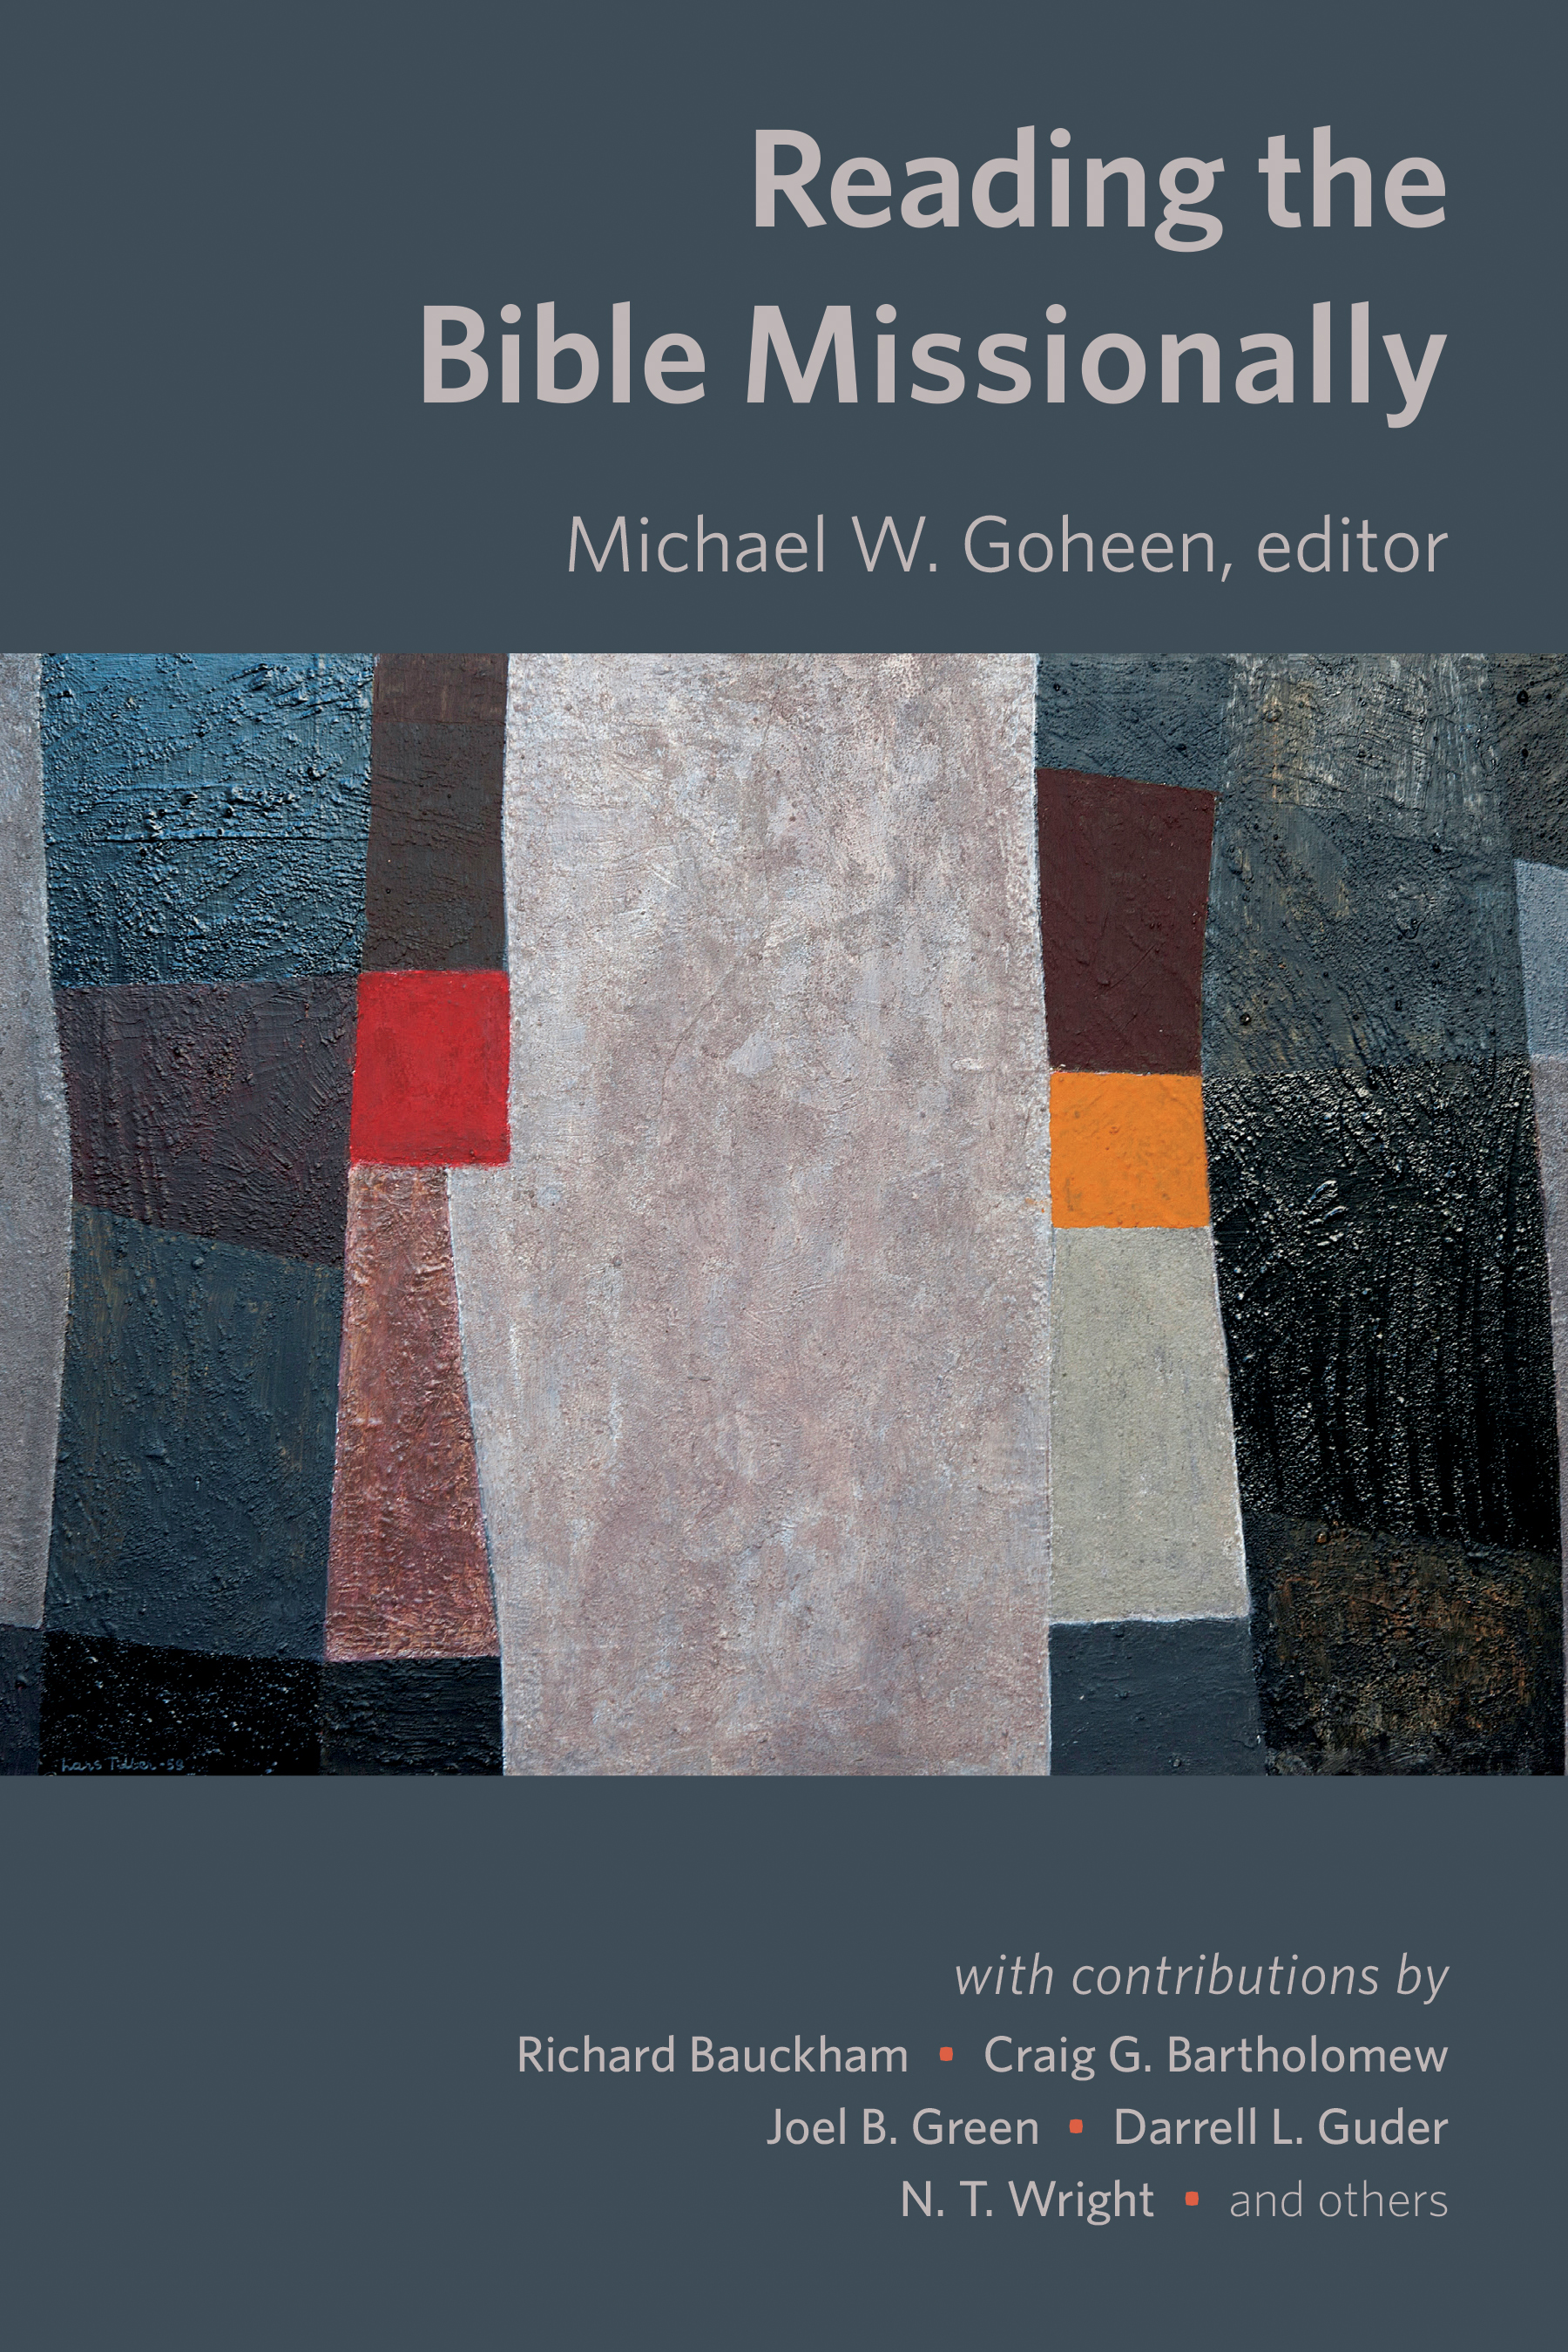 Reading the Bible Missionally Michael Goheen